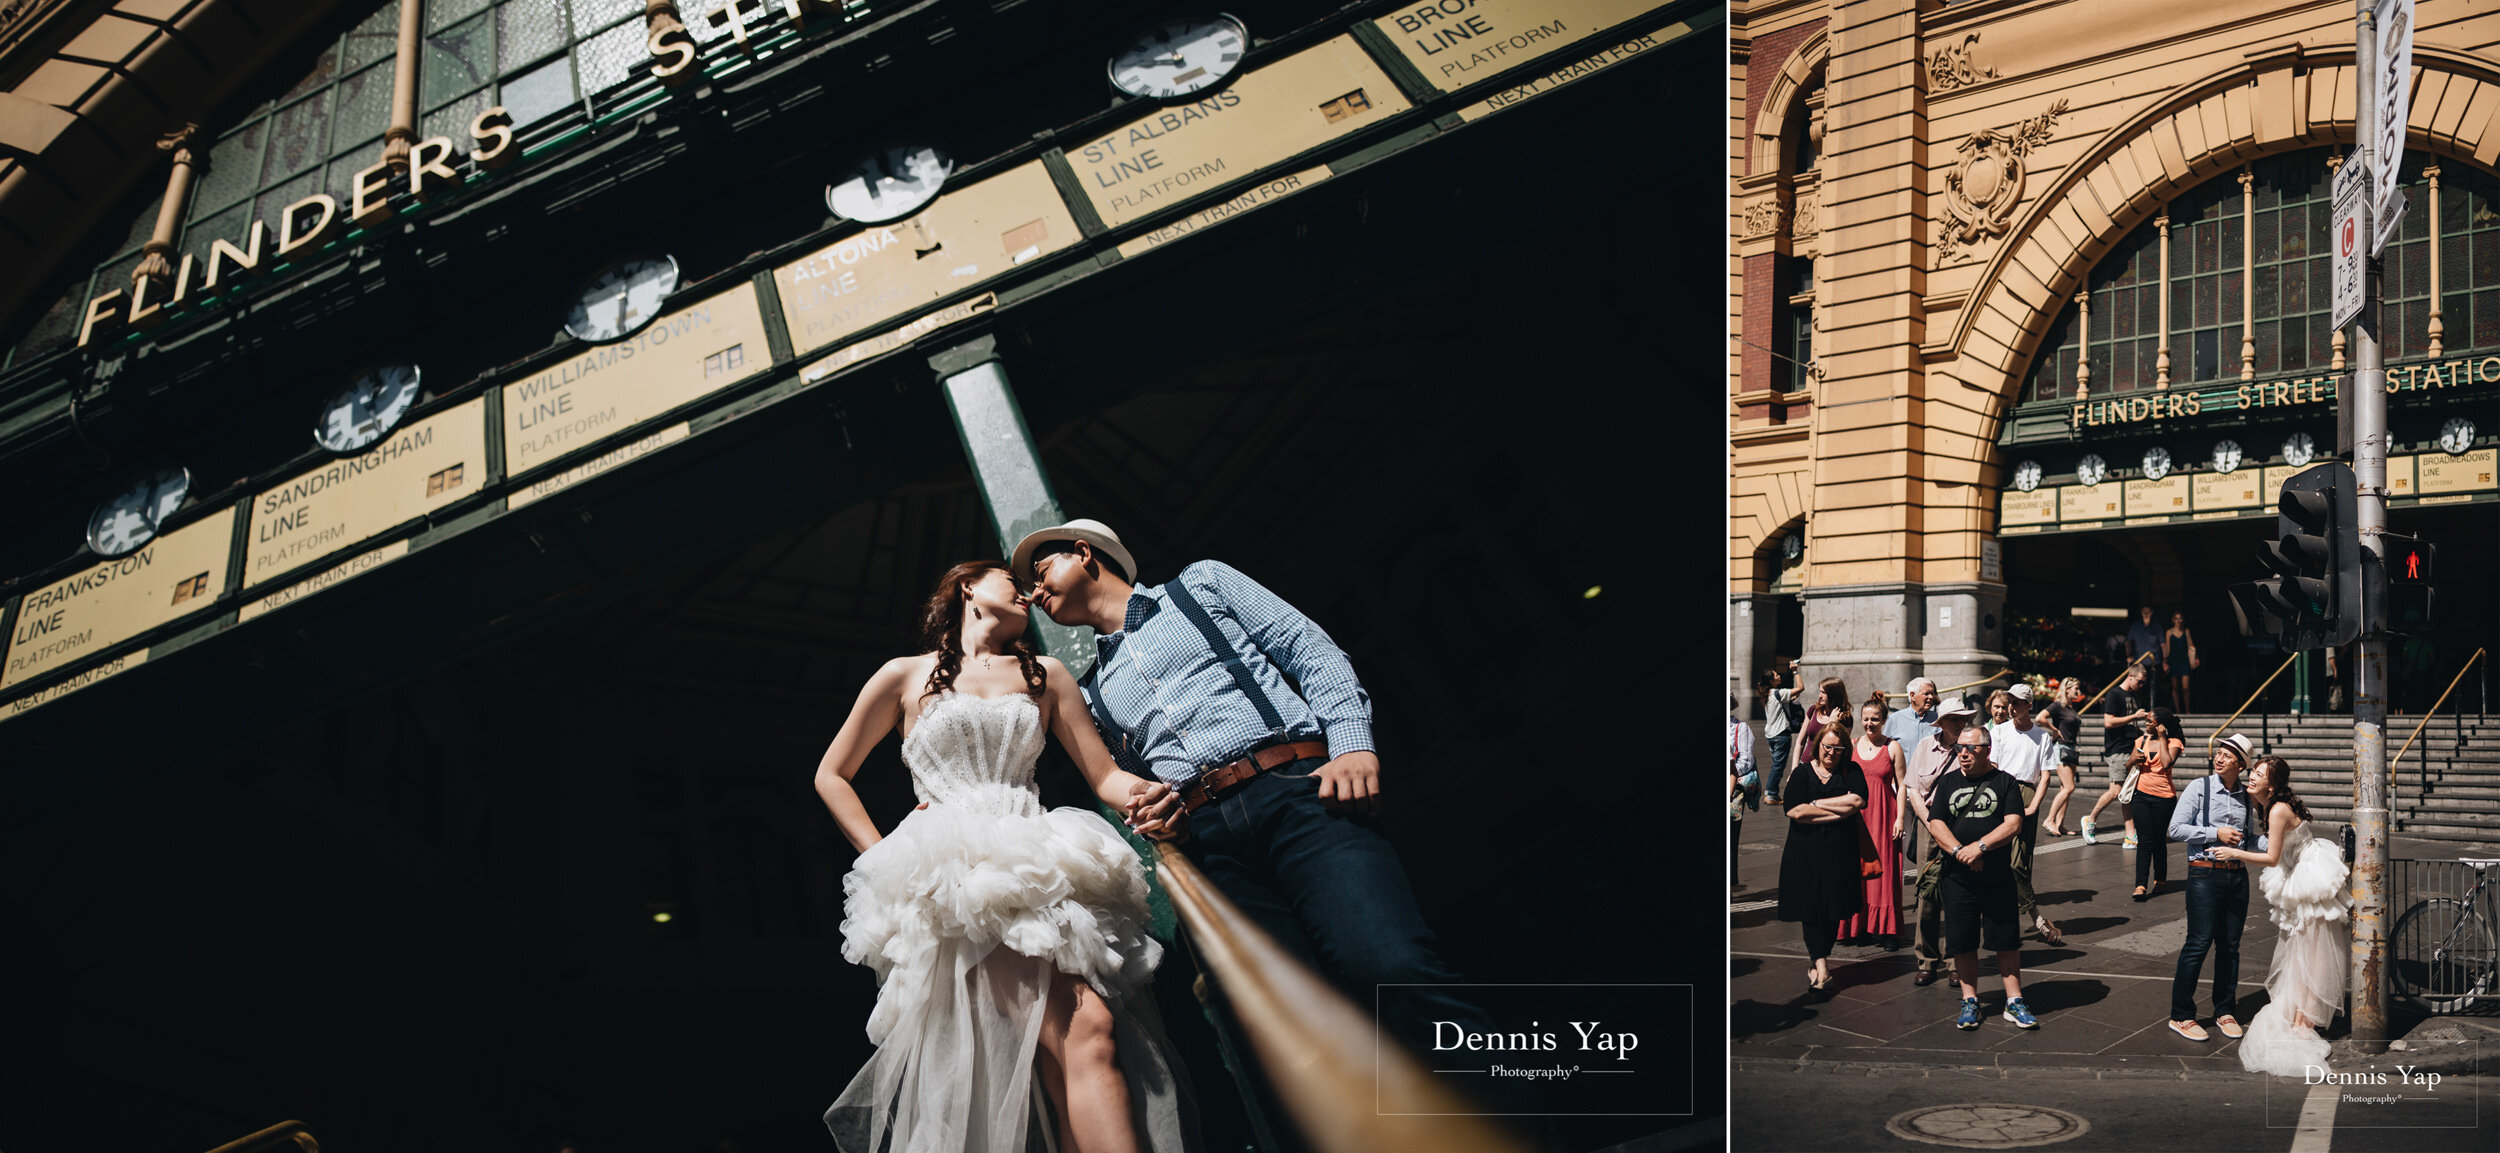 king bella pre wedding melbourne dennis yap photography malaysia top international photographer-5.jpg